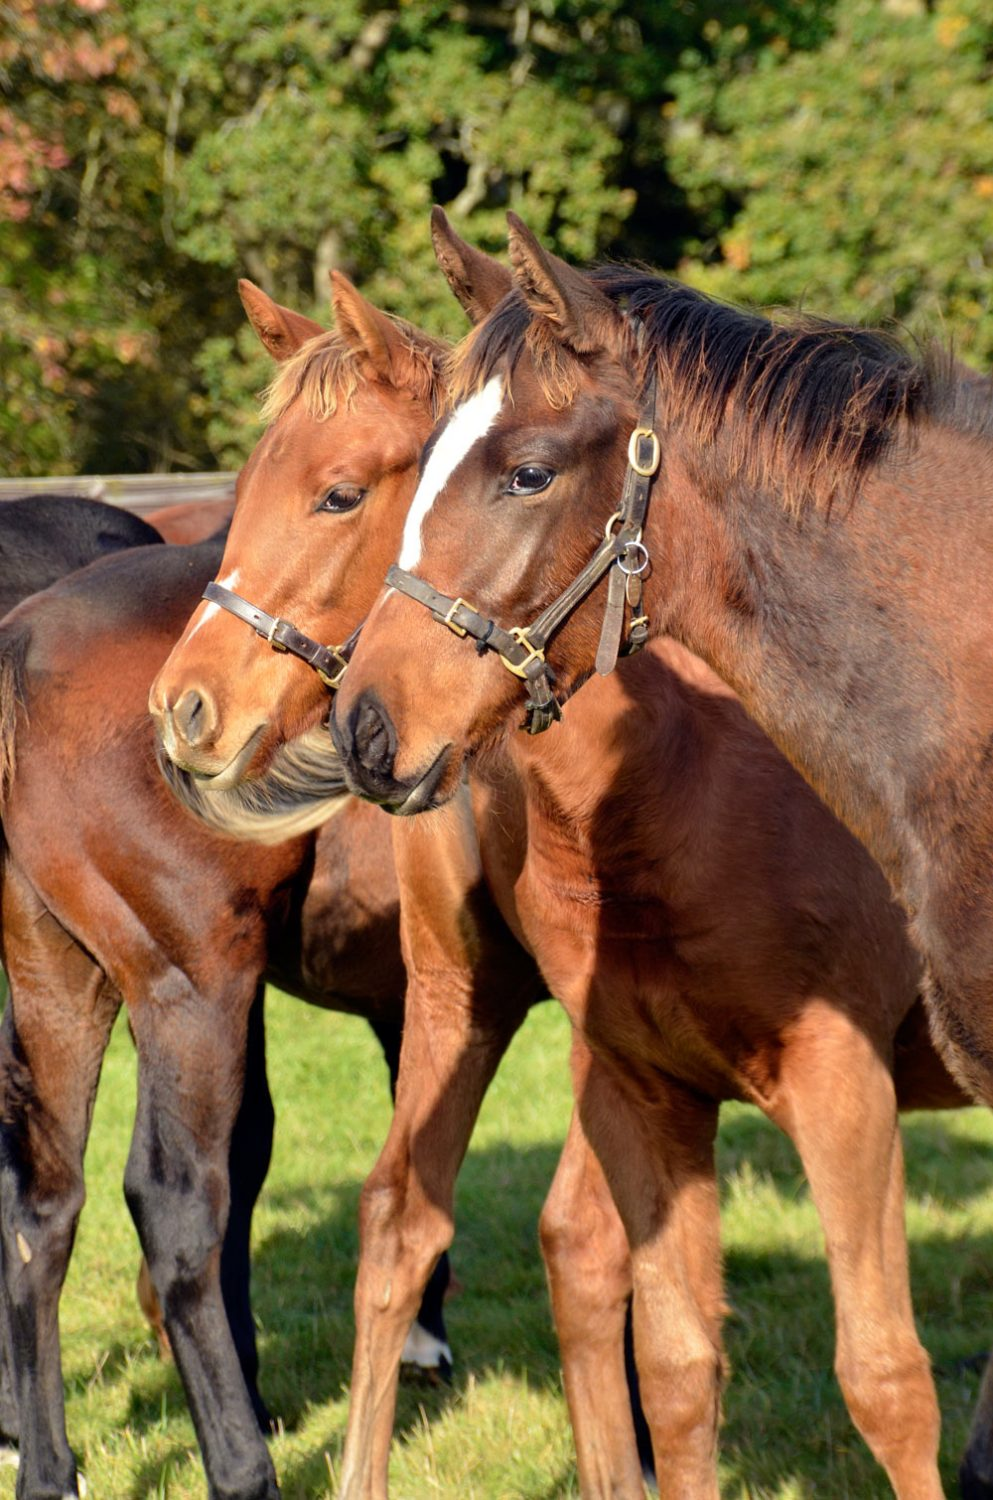 Morzine and Nur Jahan Foal pic. owners